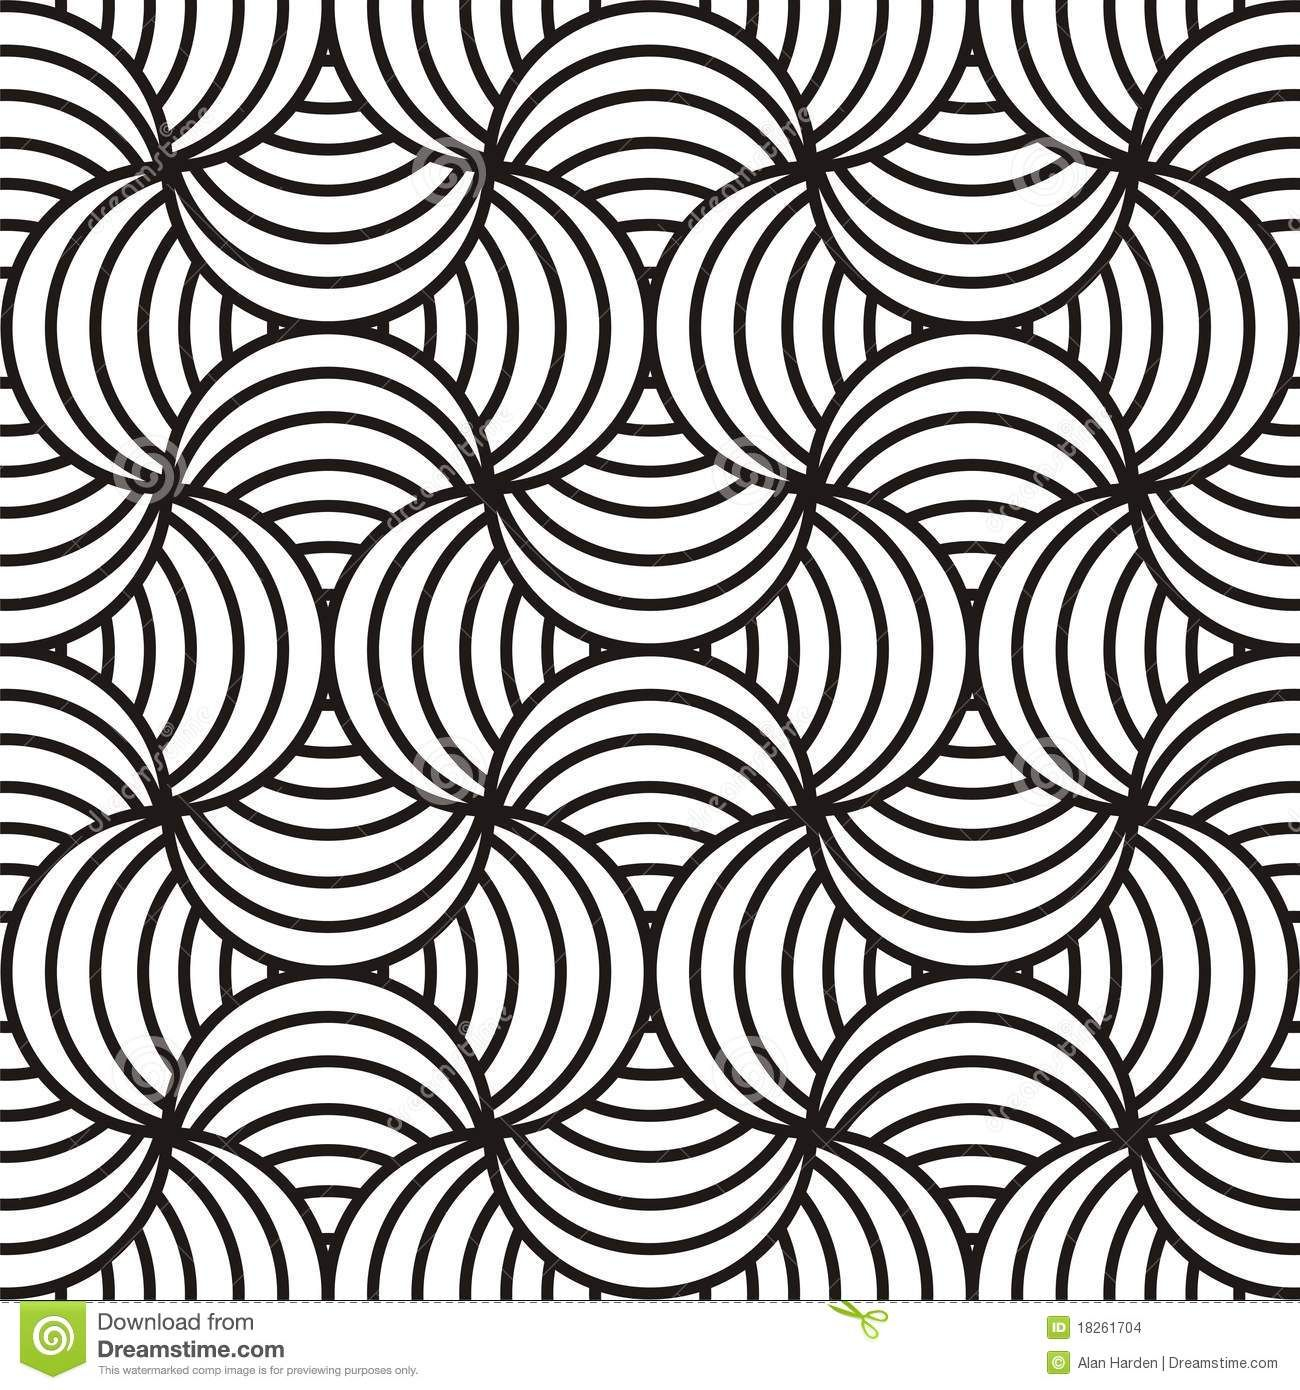 Design Black And White Designs black and white design google search awesome designs search